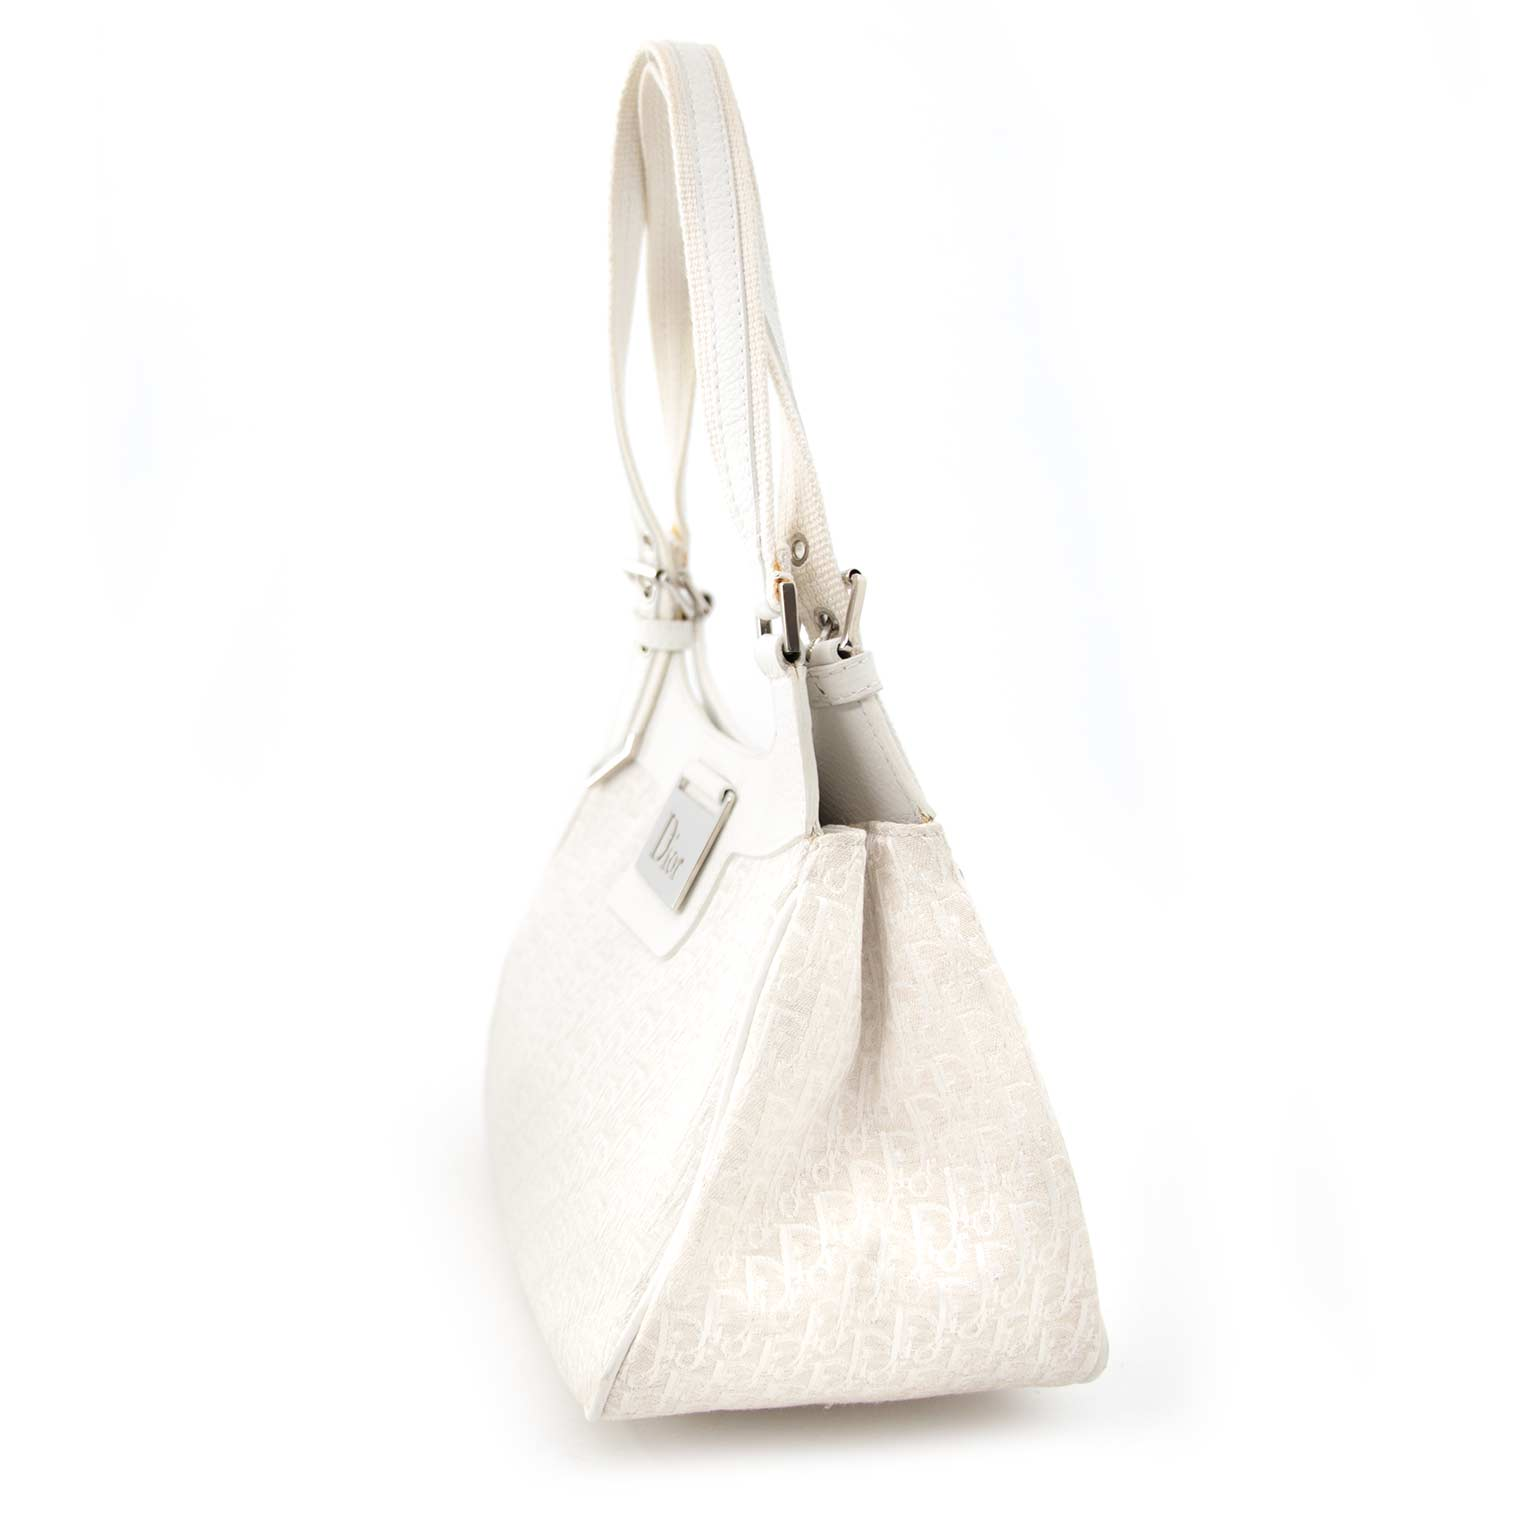 d22e20e51b8 ... de beste prijs bij Labellov online Secondhand designer items such as  Dior White Monogram Shoulder Bag for the best price available online